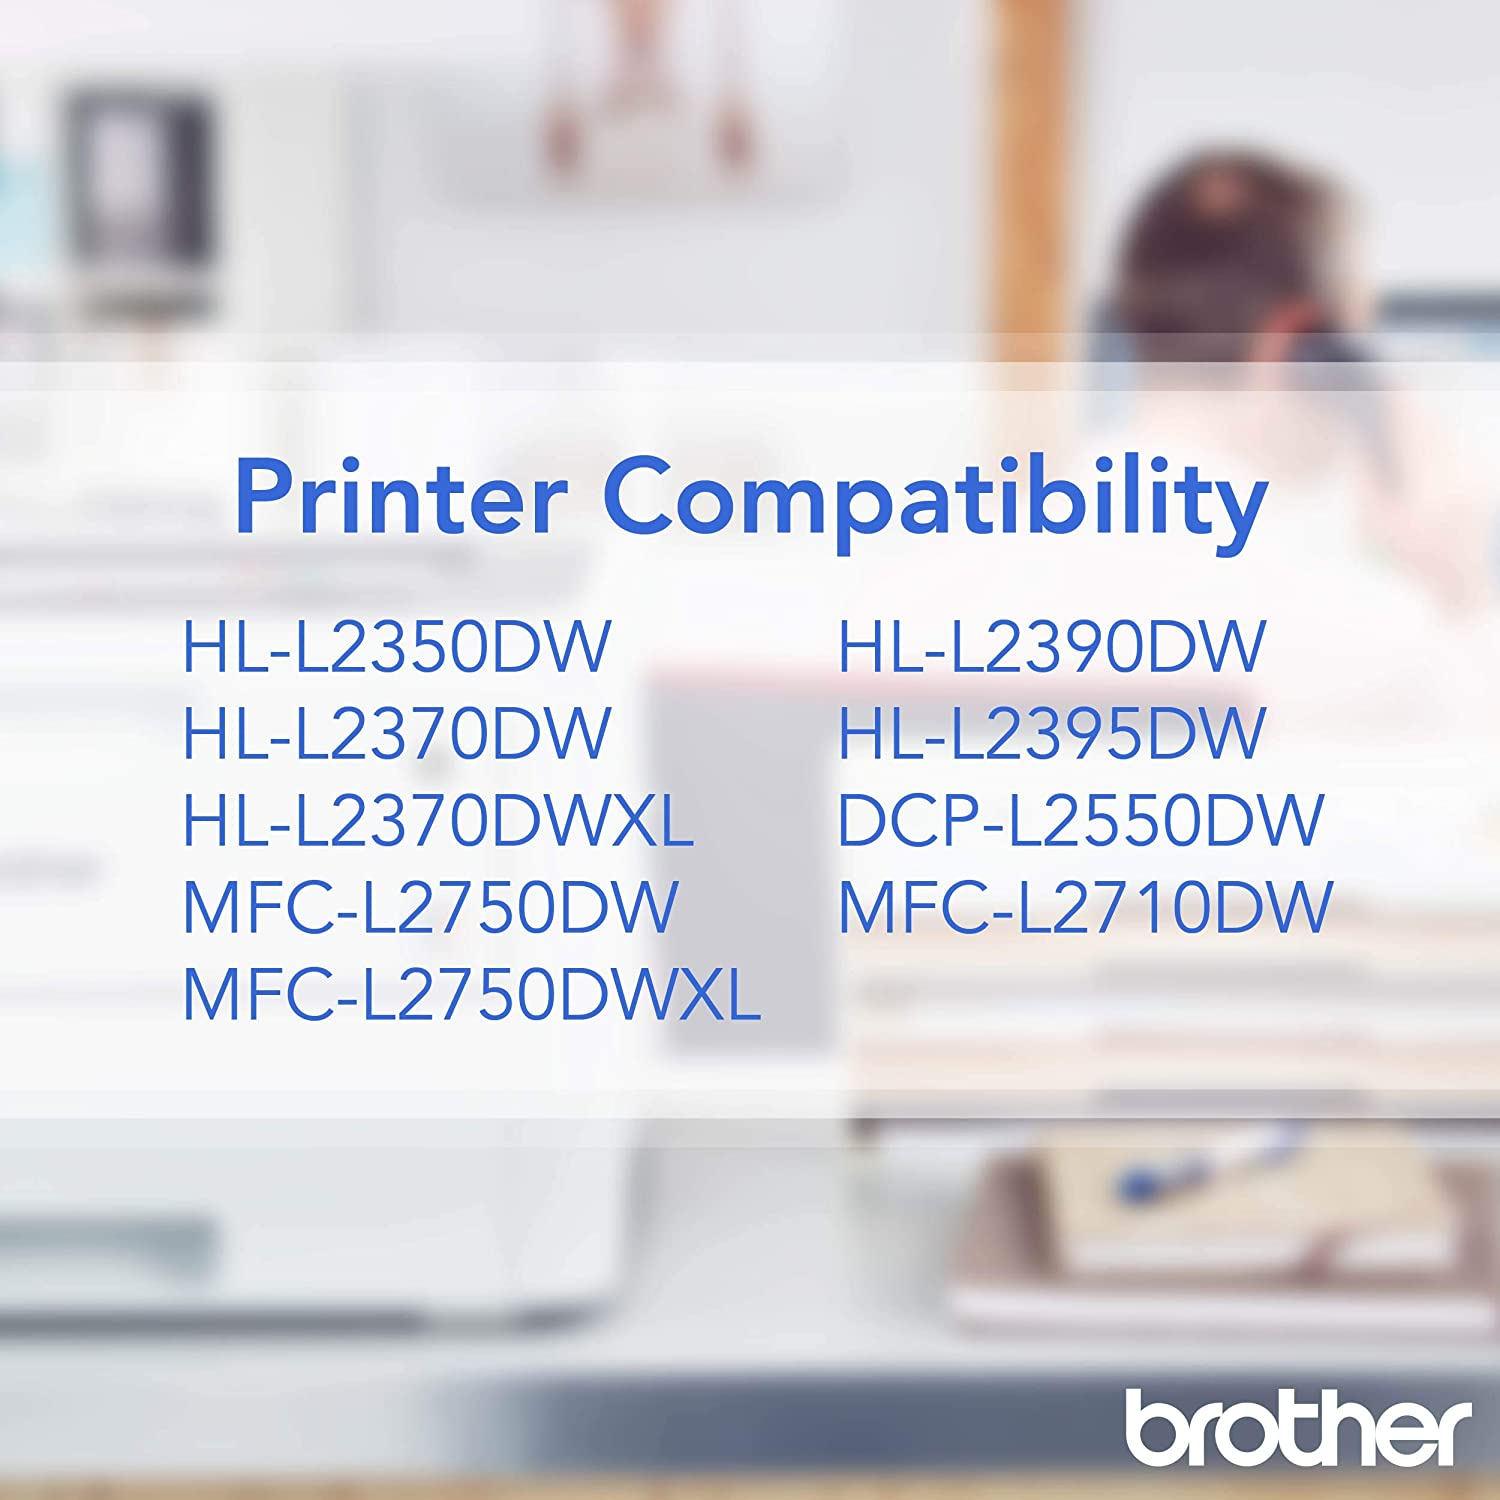 Brother TN-730 DCP-L2510 L2530 L2550 HL-L2310 L2350 L2370 L2375 L2390 MFC-L2710 L2713 L2715 L2717 L2730 L2750 Toner Catridge (Black) in Retail Packaging